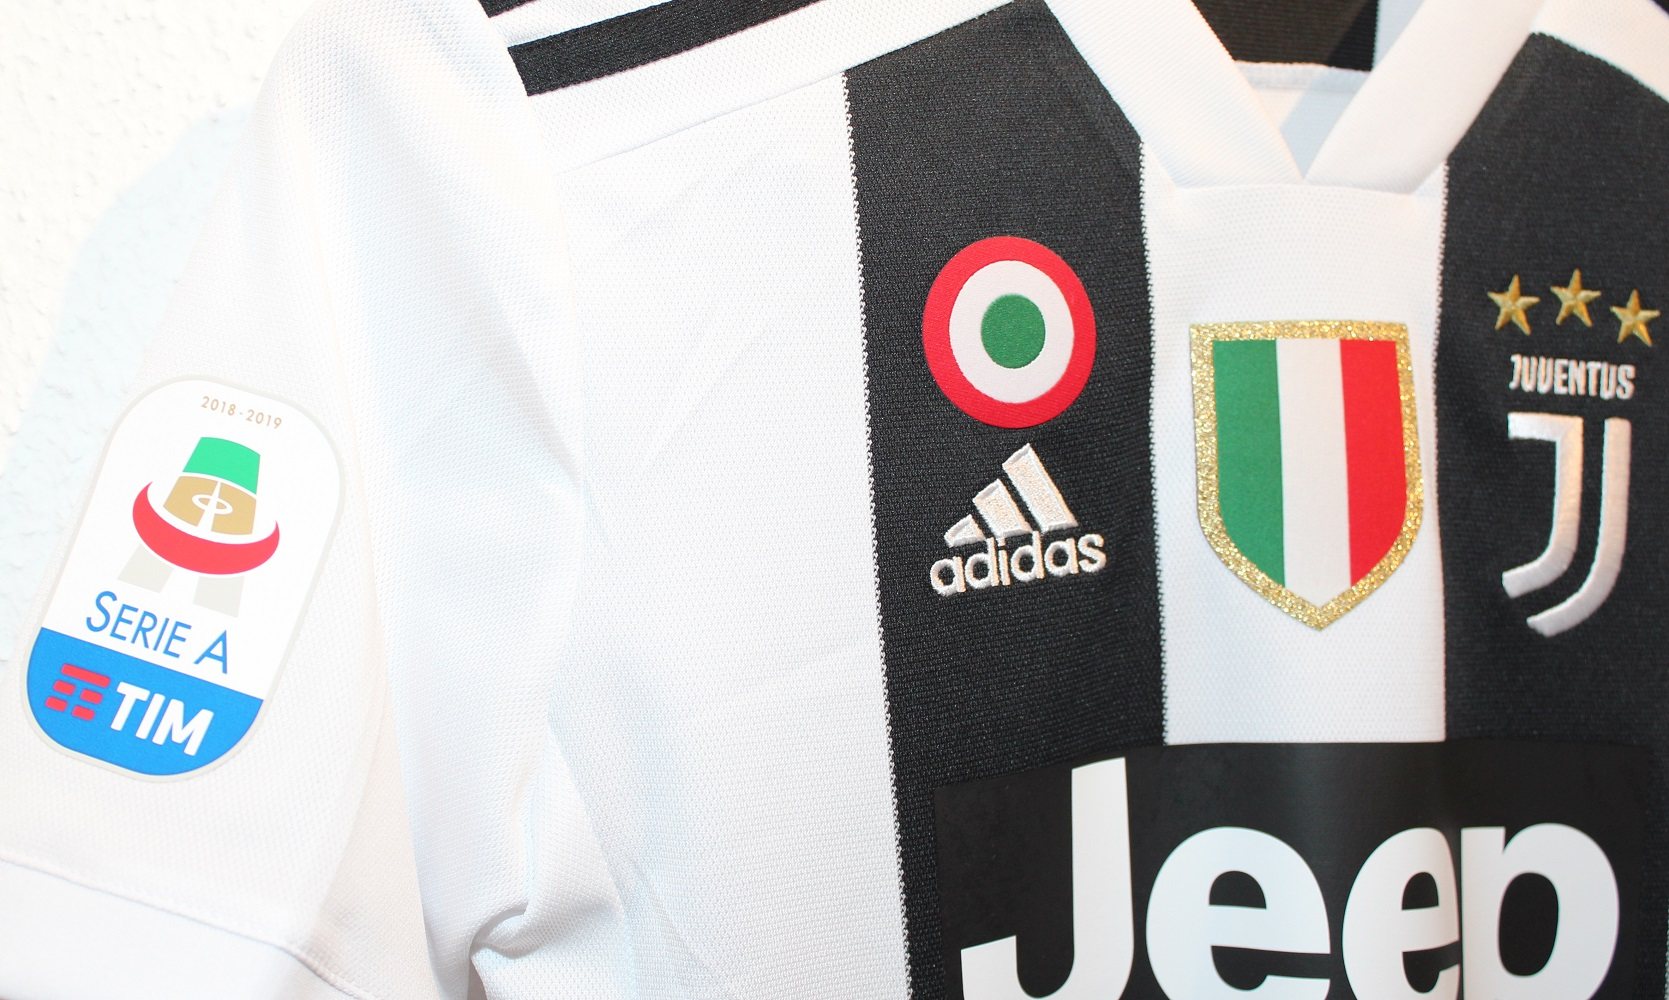 Juve trøje badges close up